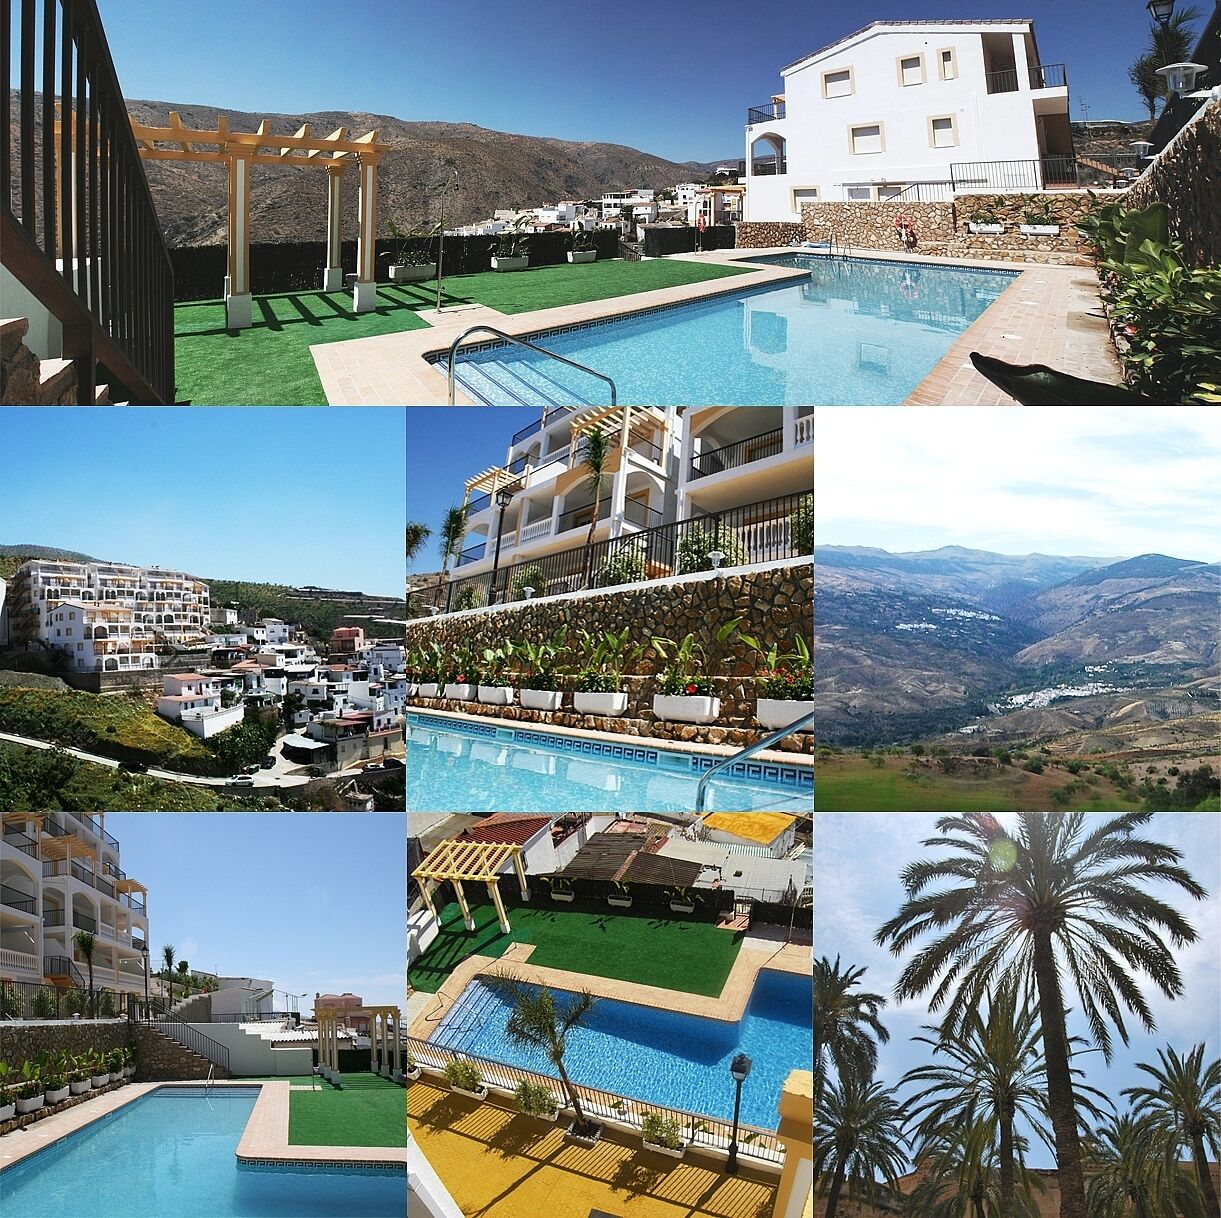 Modern Fully Equipped 2 Bed 2 Bath Apartment With Shared Pool In Andalusia Albunol Esp Great Rates At Expedia Ie